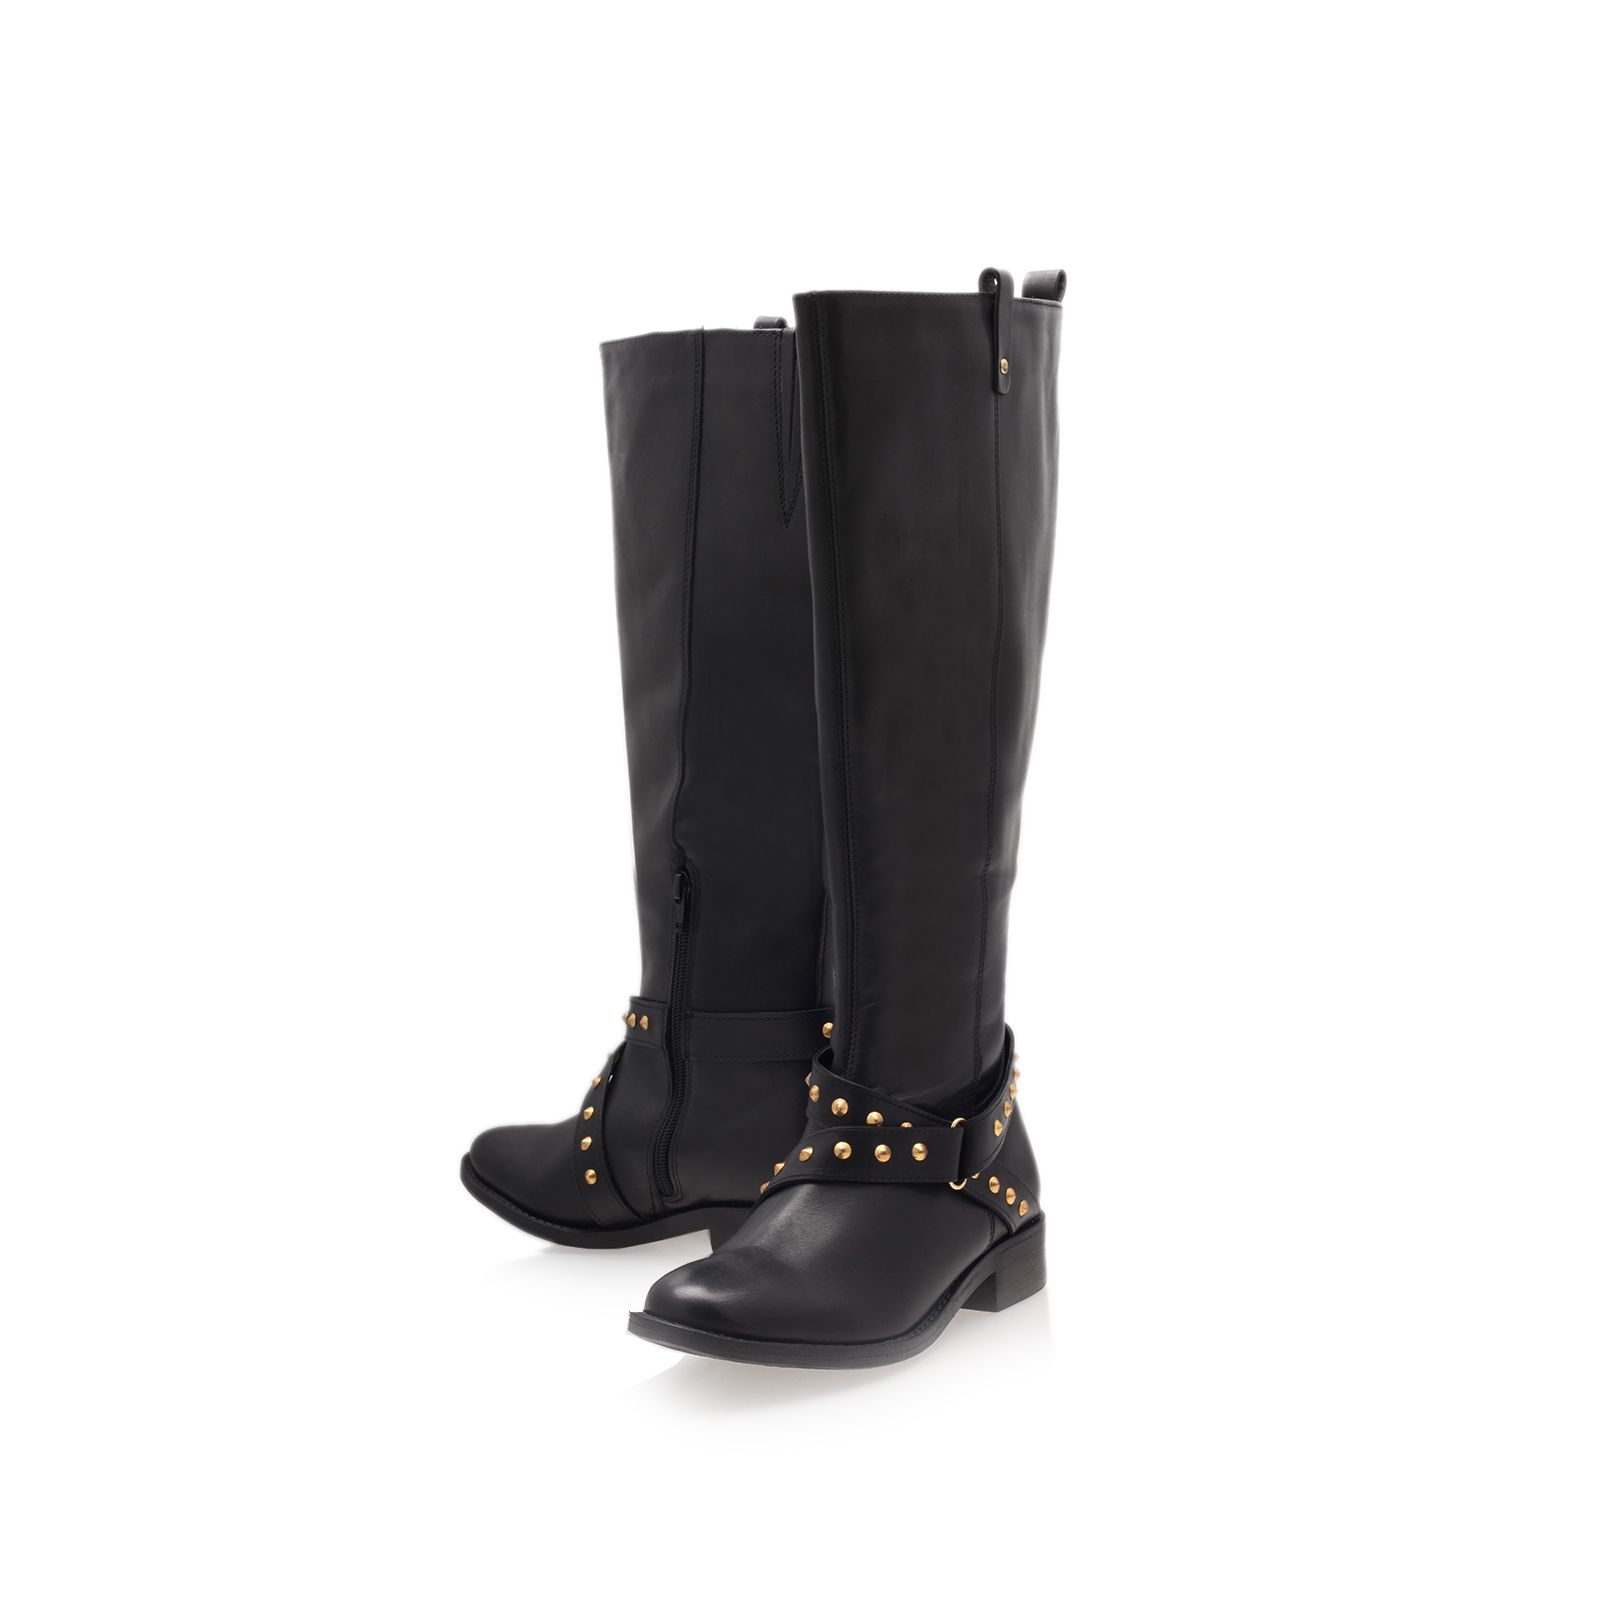 Bridie knee high boots